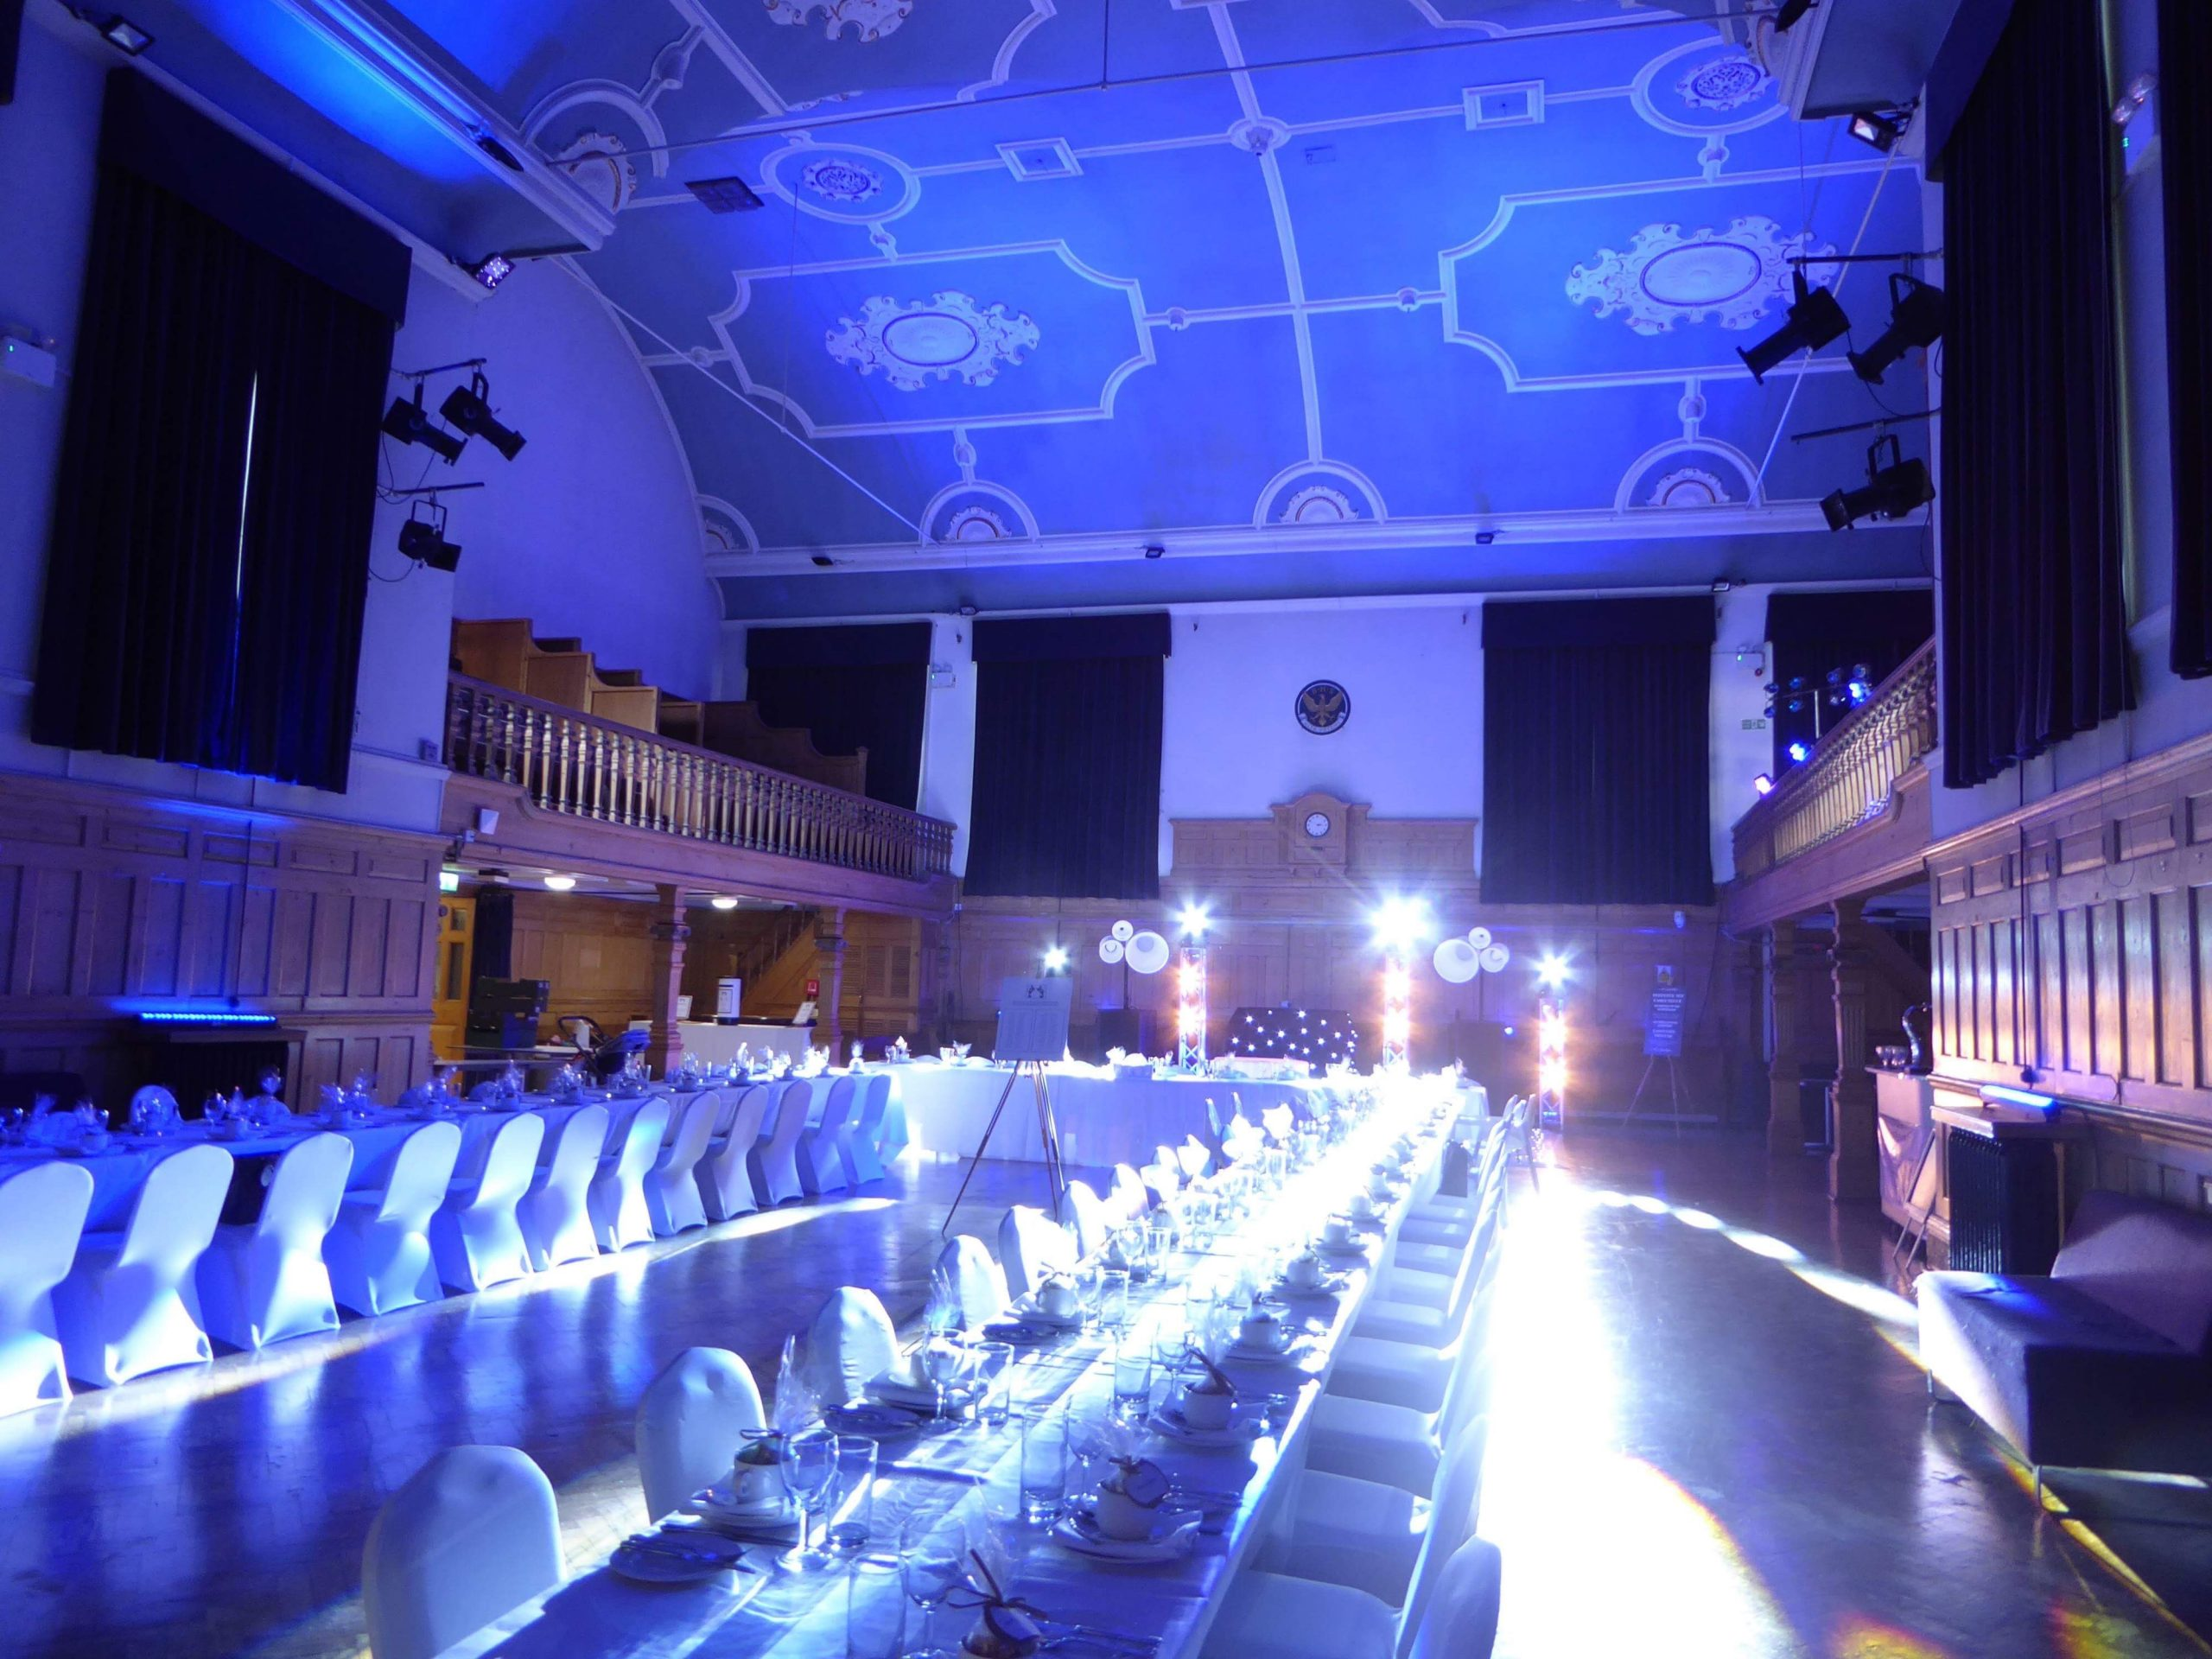 Wedding Lighting in a large venue